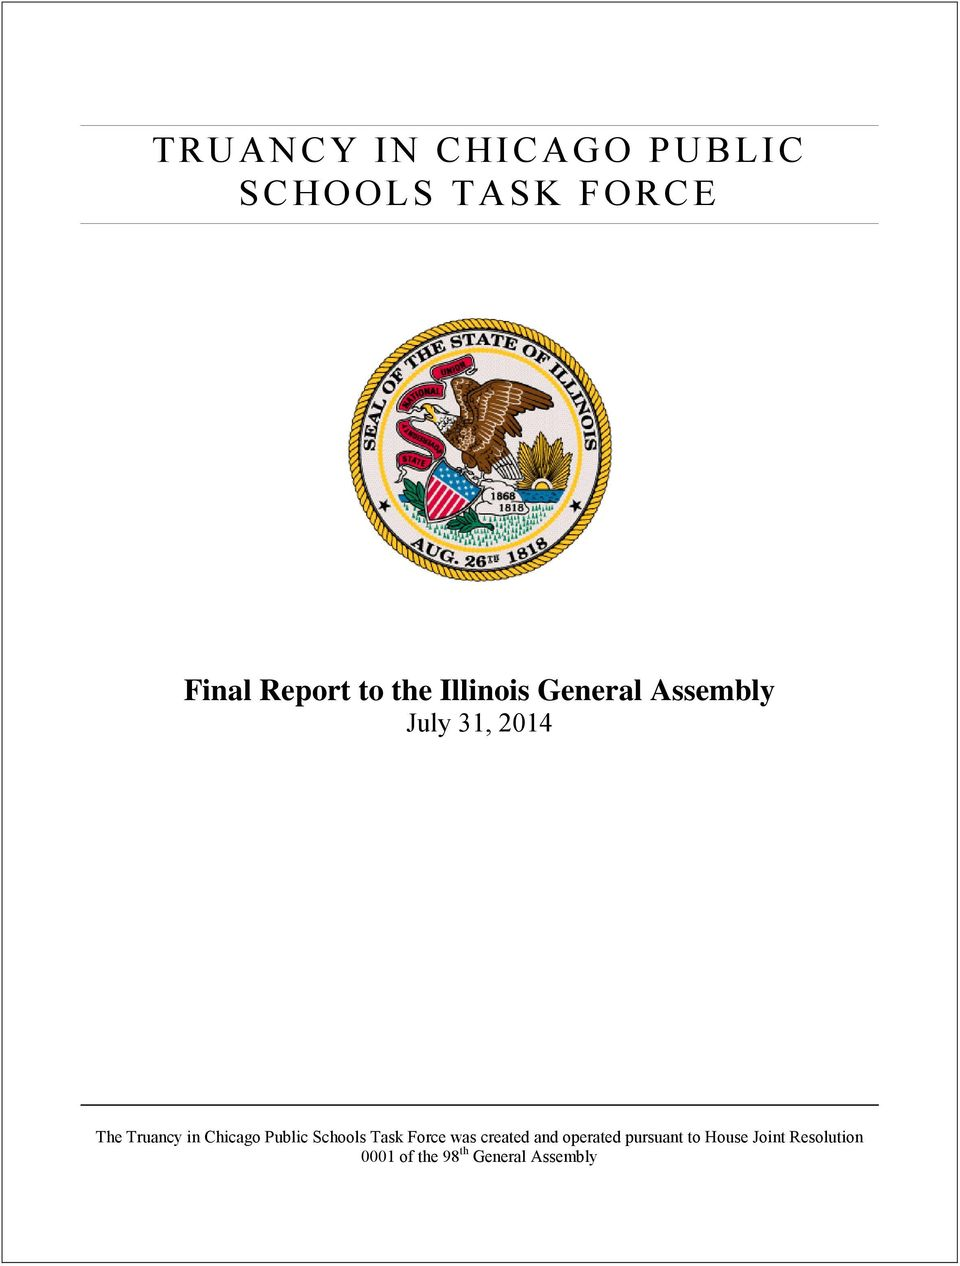 Chicago Public Schools Task Force was created and operated